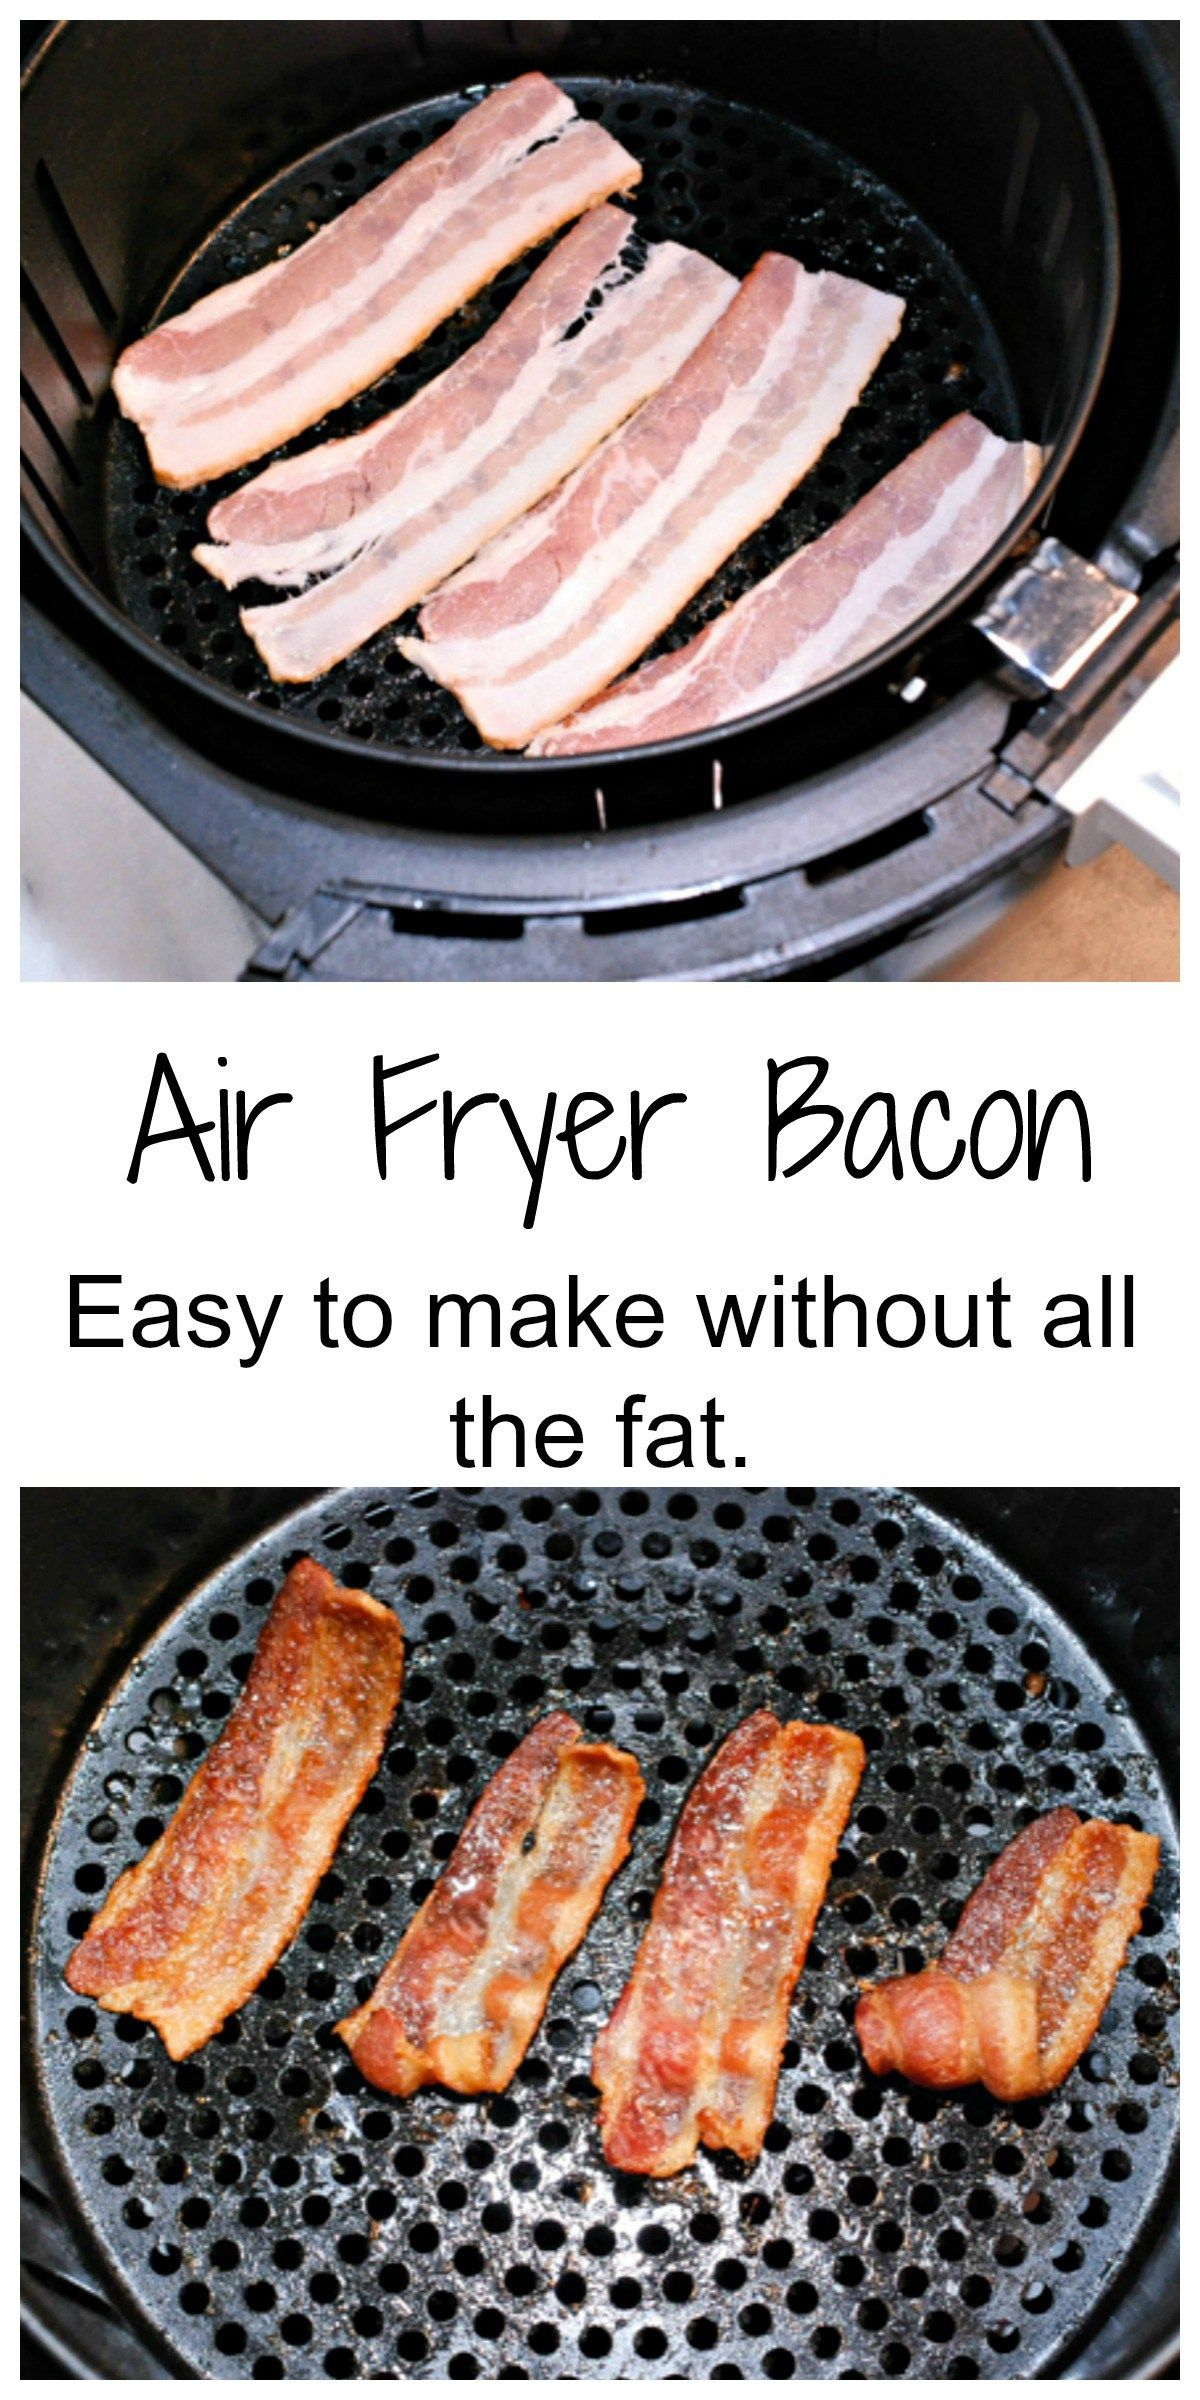 Air Fryer Bacon & Grilled Cheese sandwich Air fryer